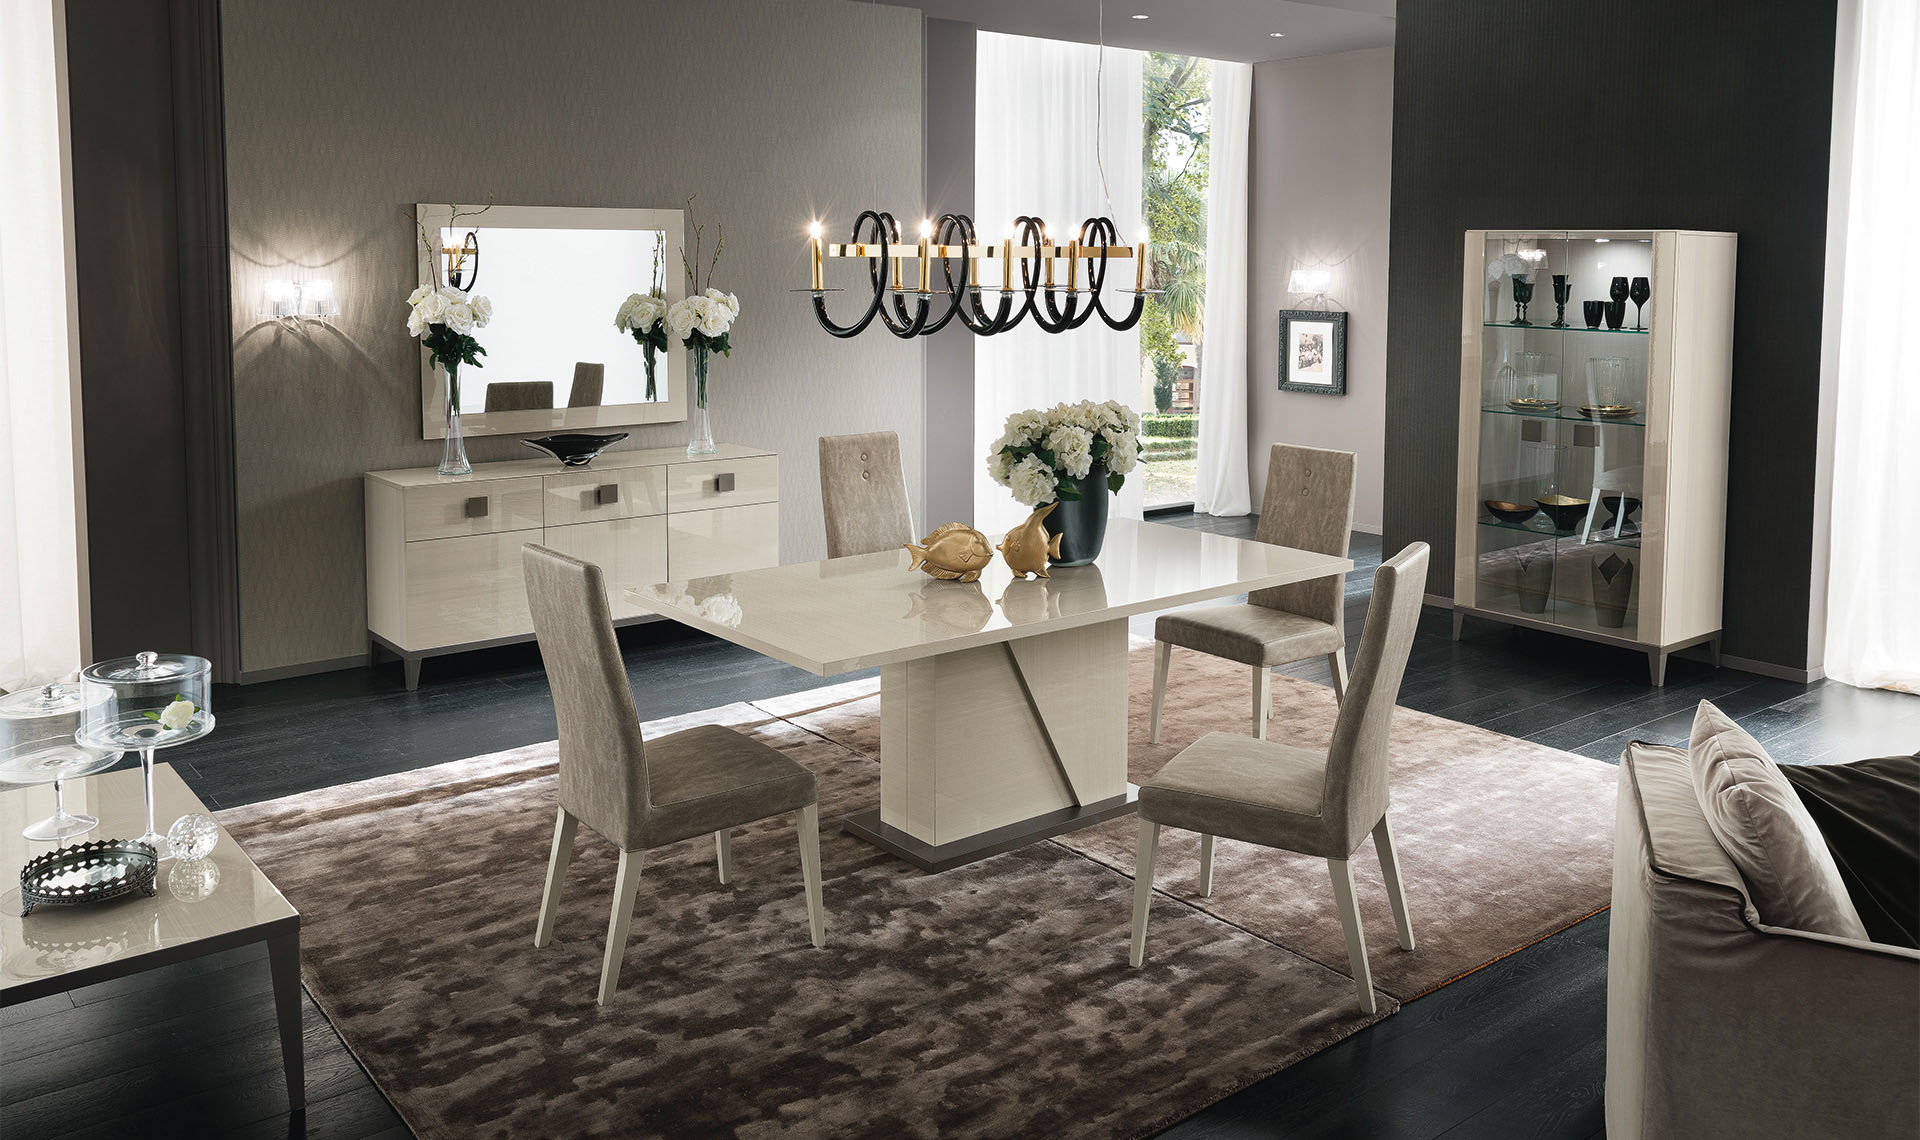 COZY LIVING FURNITURE – MISSISSAUGA – A NAME OF TRUST THAT CARRIES